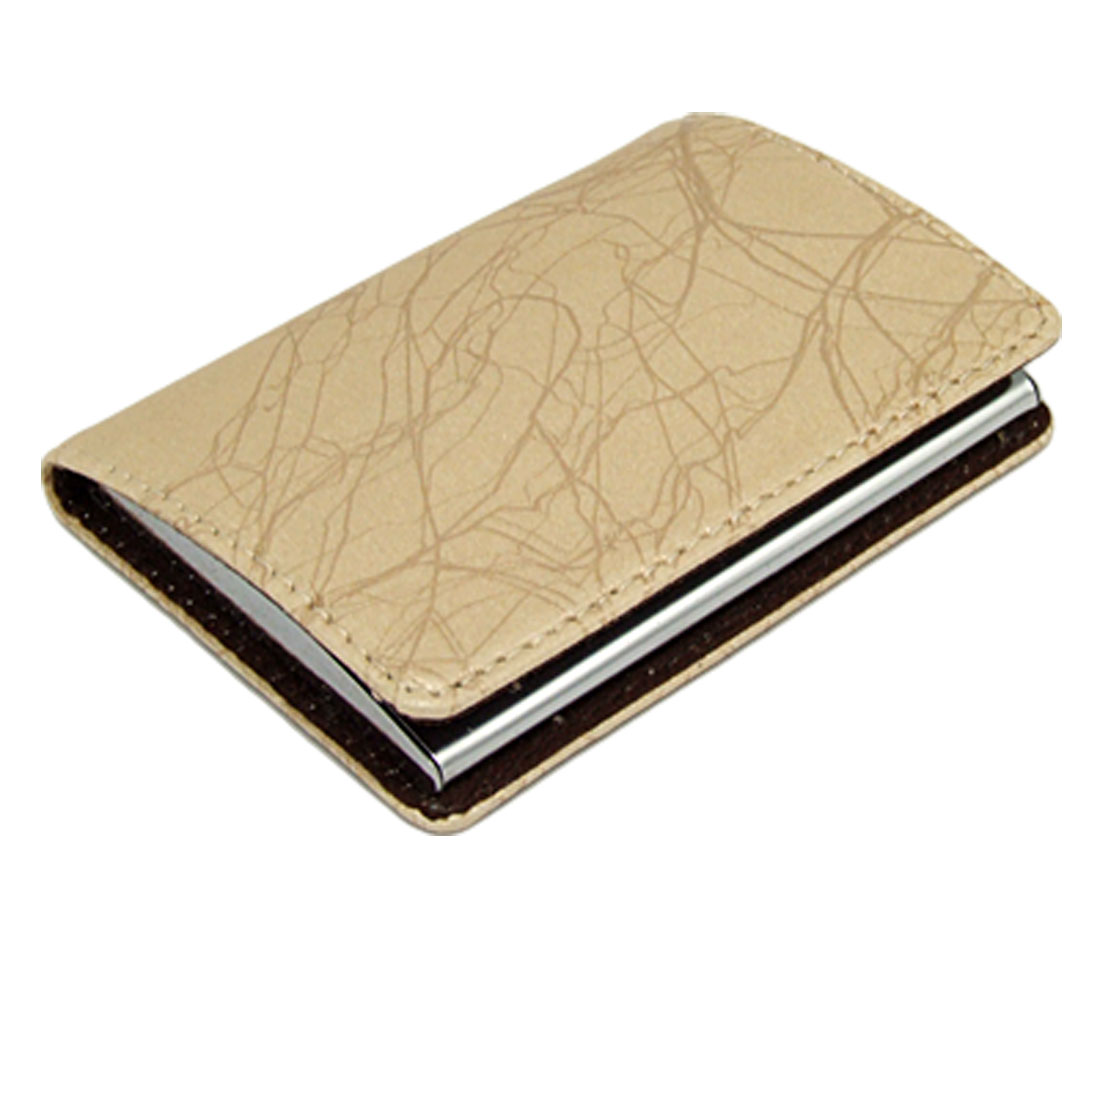 Leather Magnetic Metal Business Card Holder with Khaki Strip Pattern